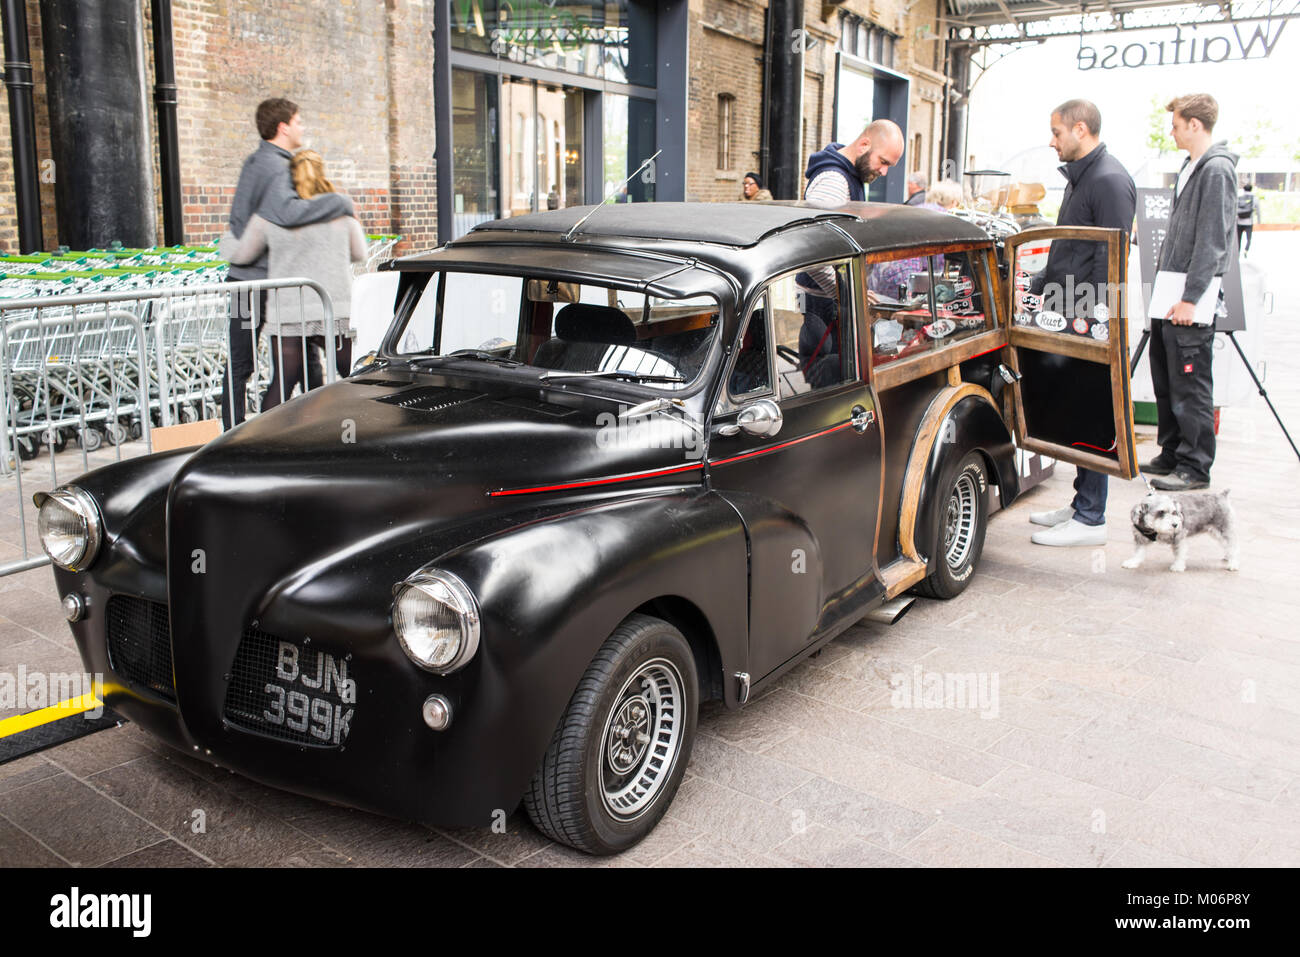 Cool hipster stall serving coffee set in a vintage car at the Canopy Market, King's Cross, London. Canopy market - Stock Image